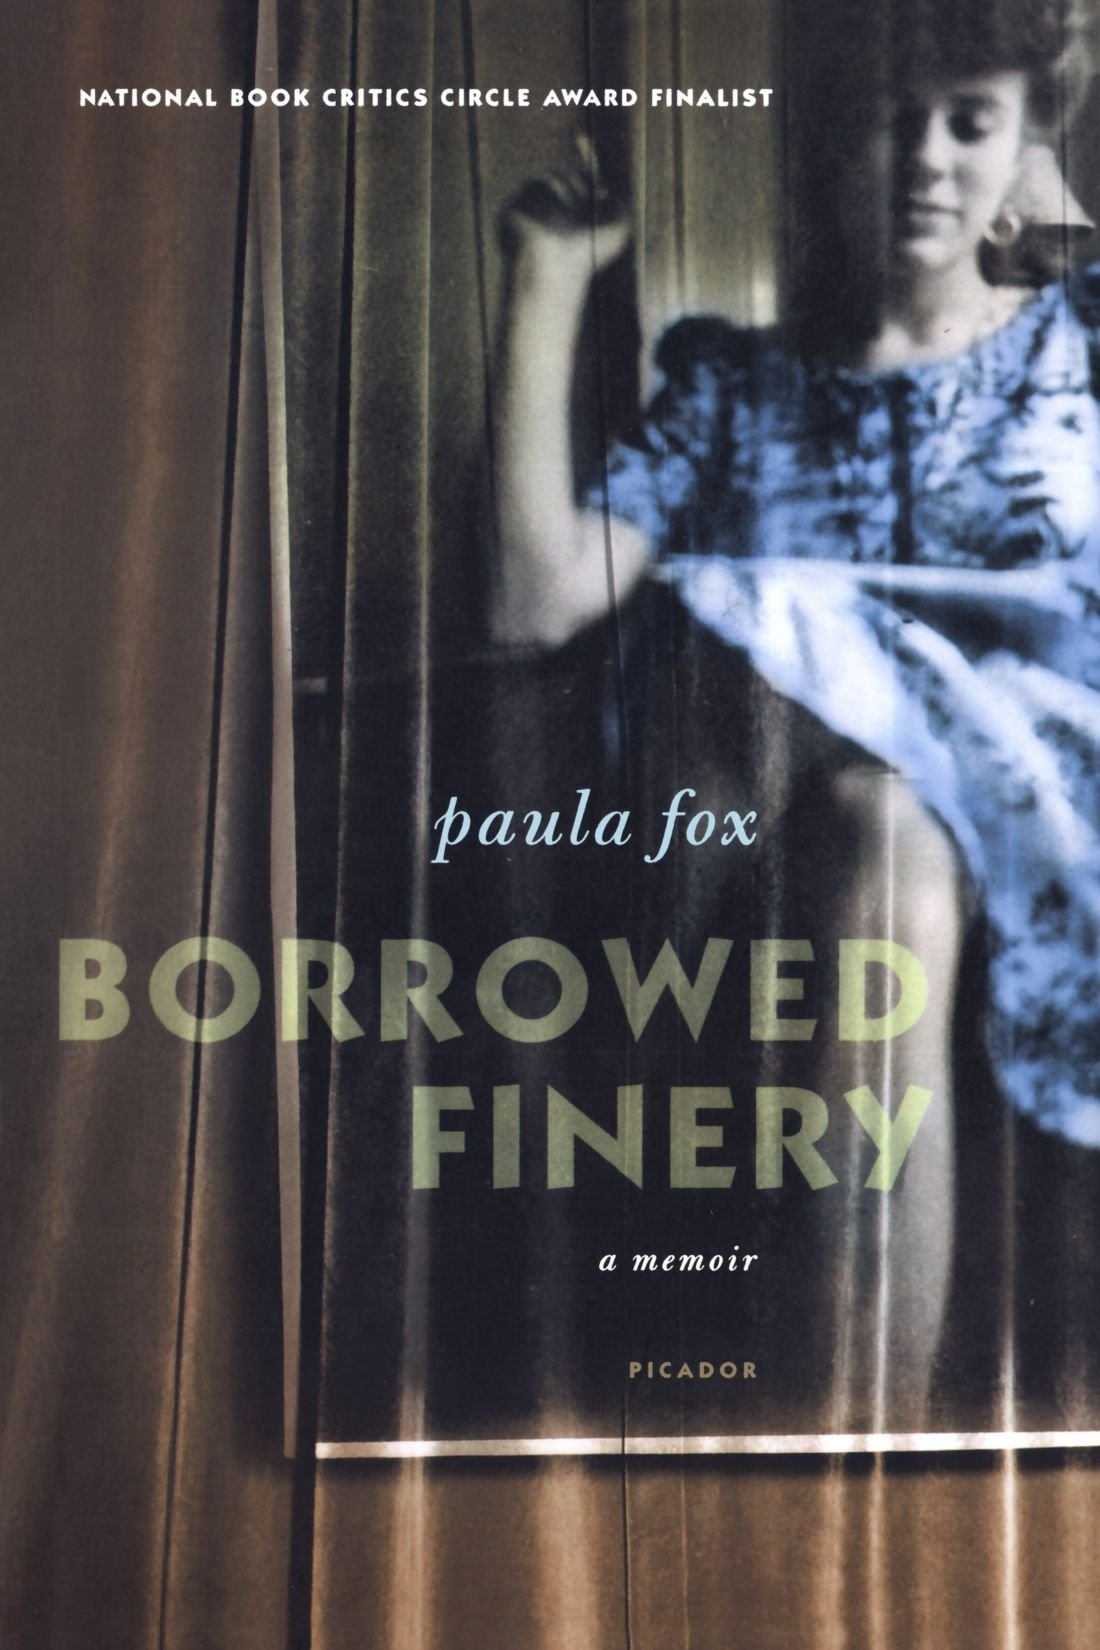 Borrowed finery review